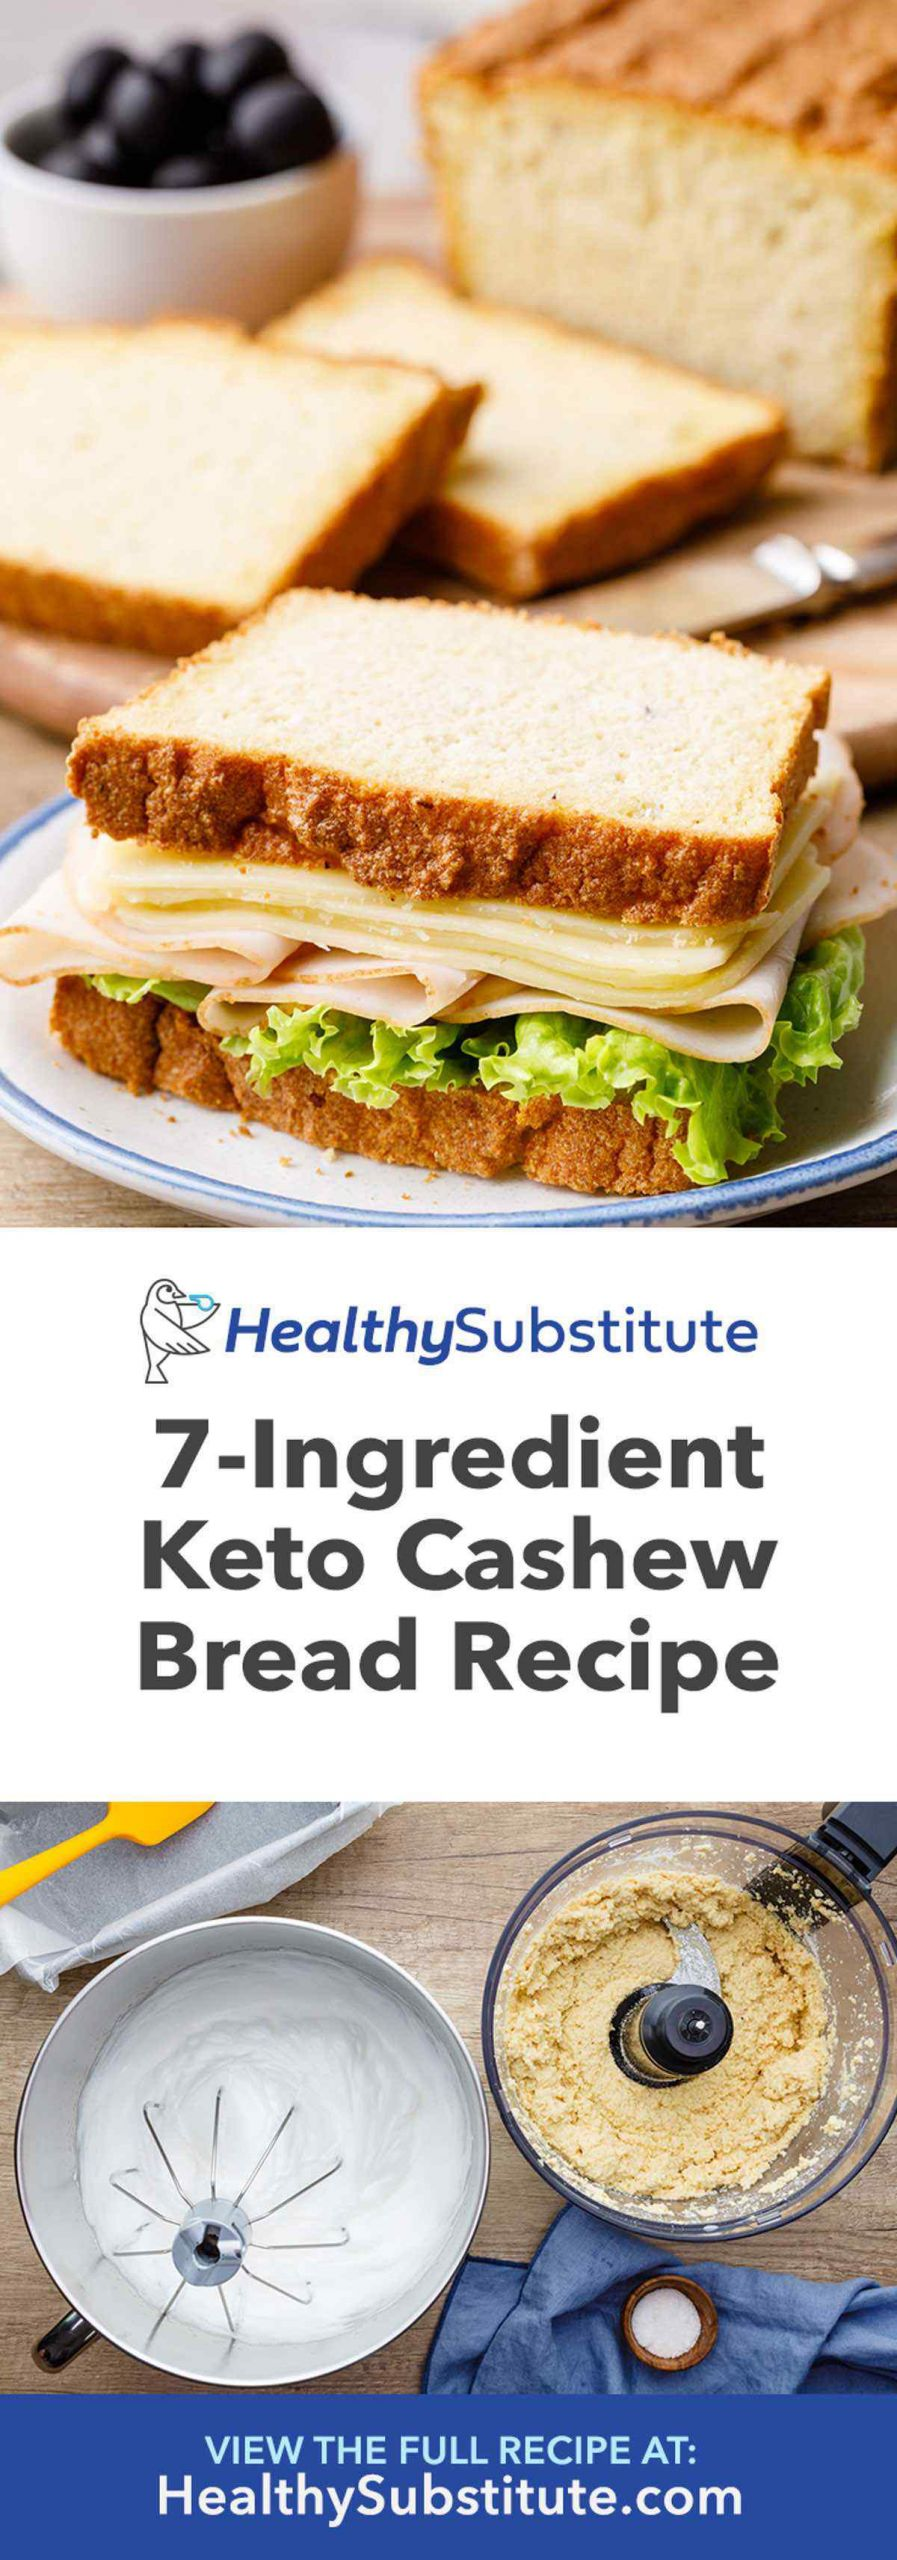 Bread Substitute For Low Carb Diet  7 Ingre nt Keto Cashew Bread High Protein Low Carb